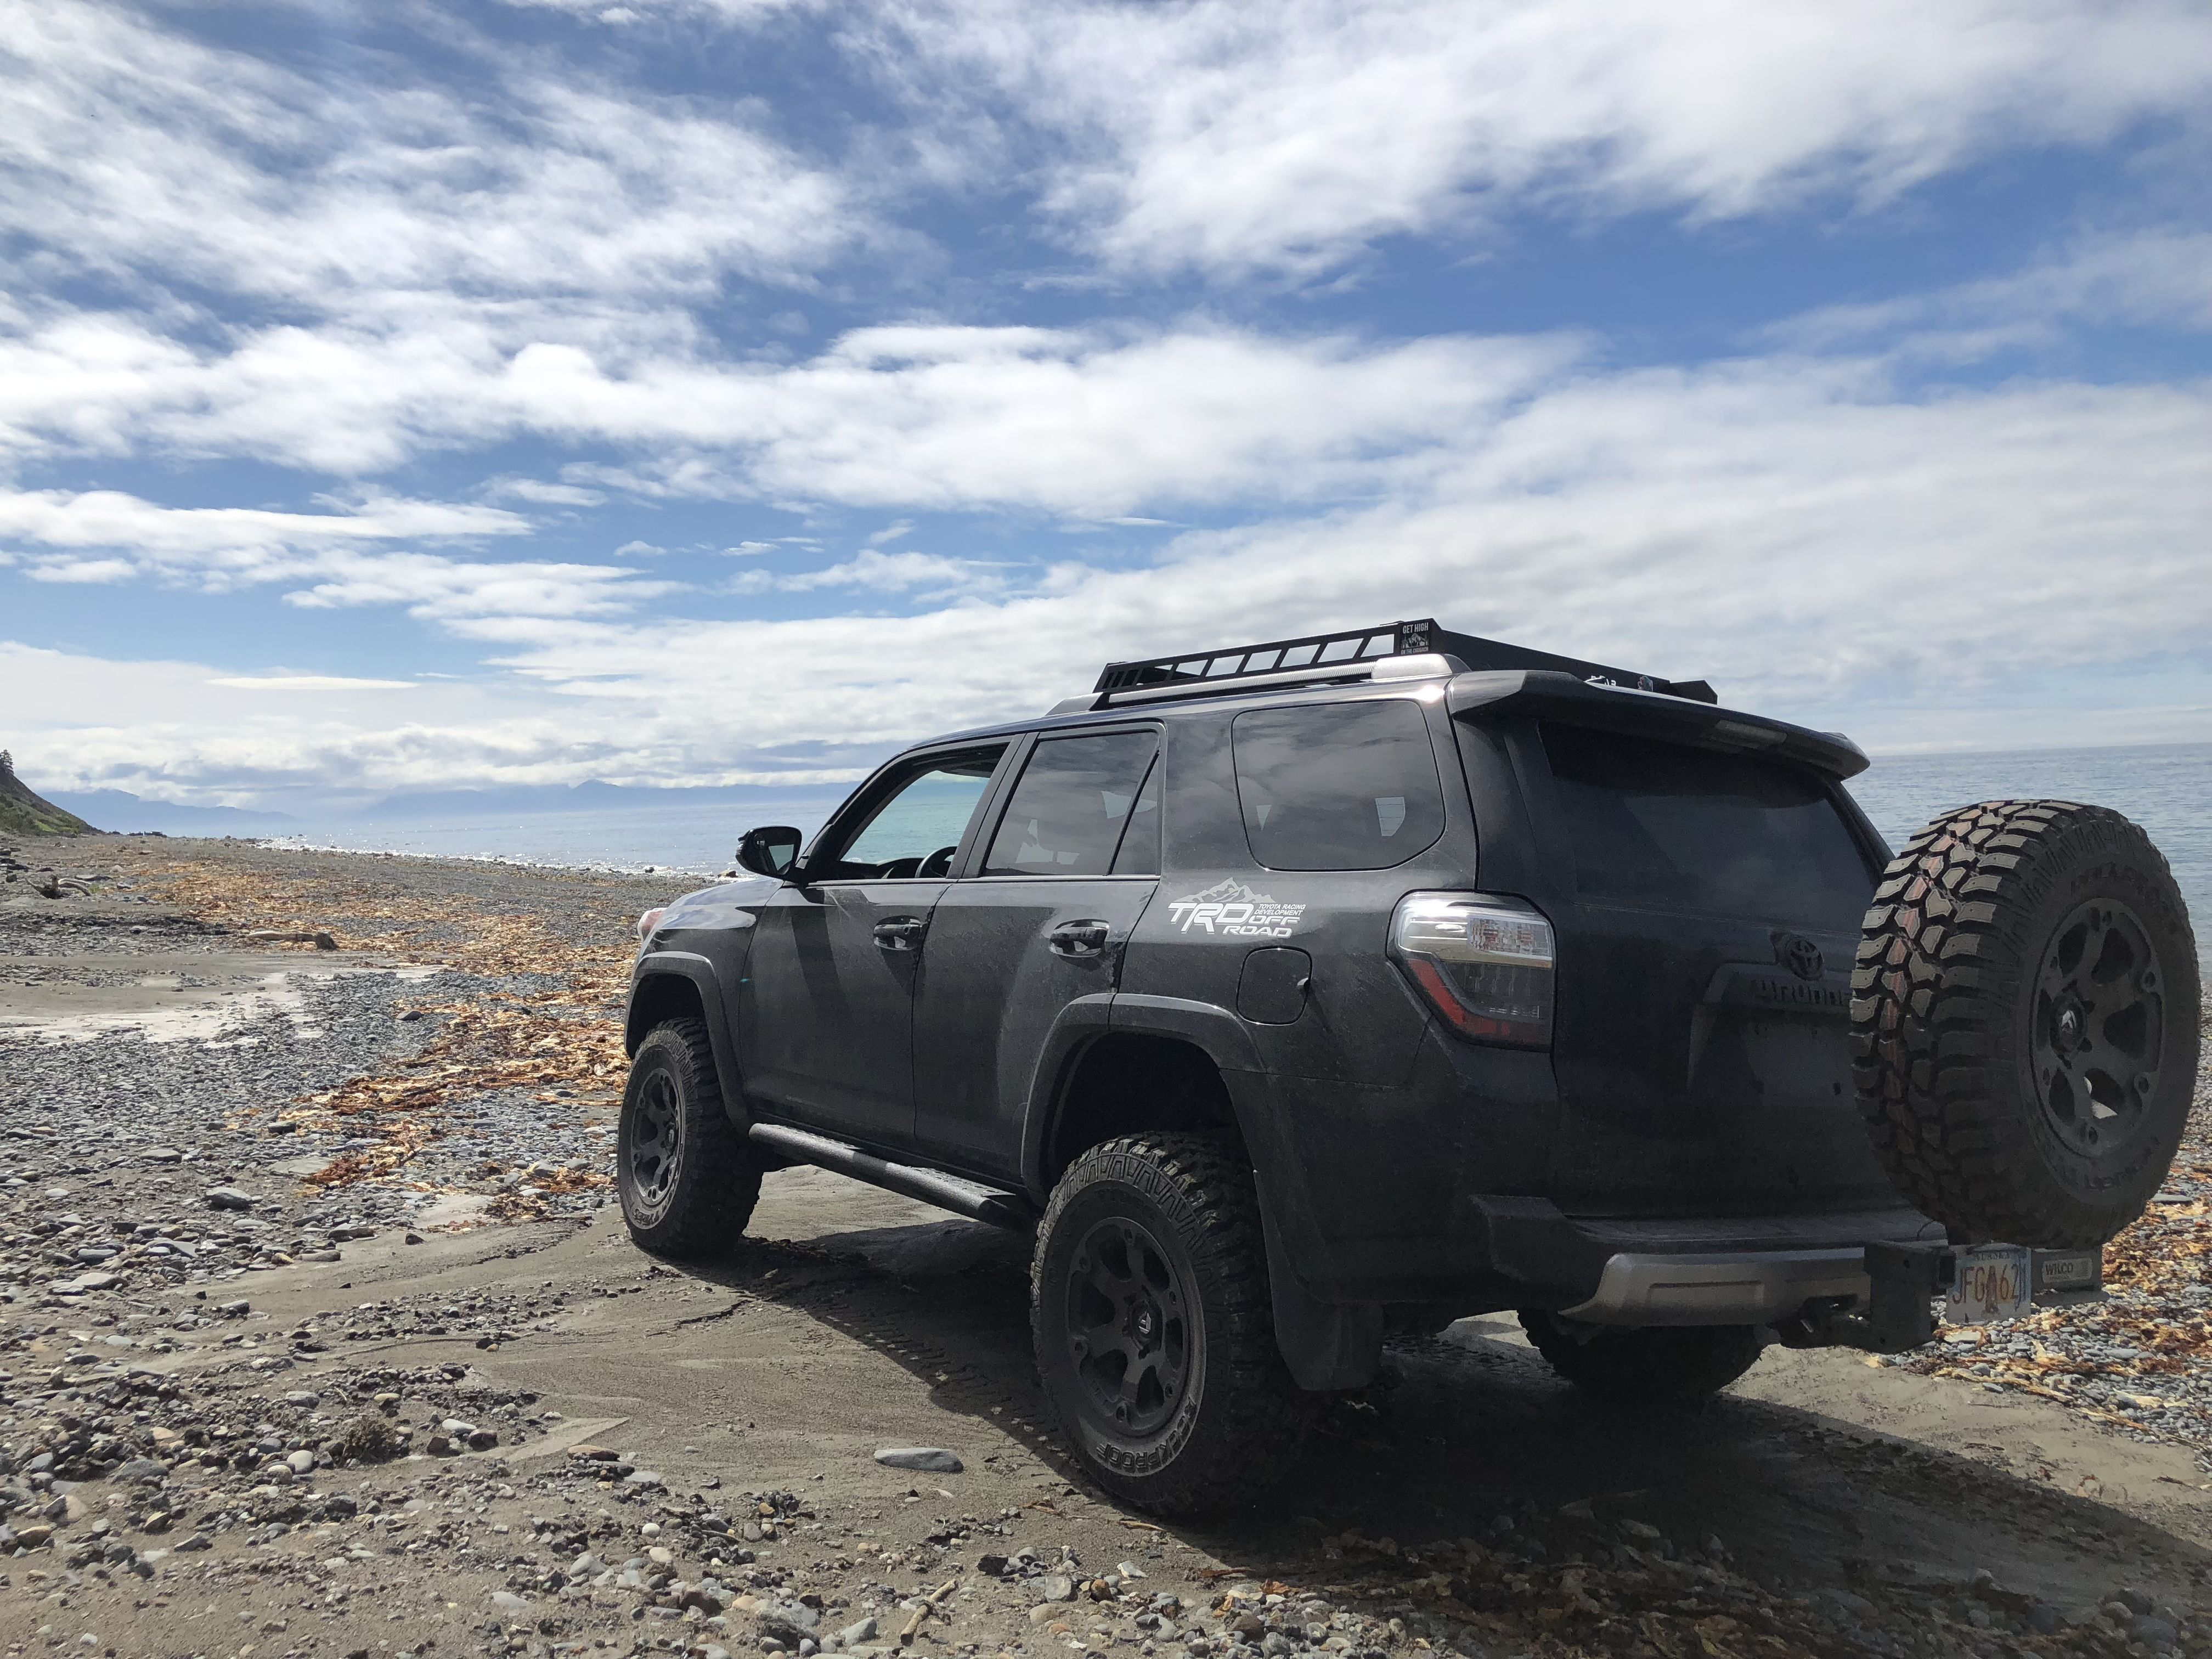 Sporting The Finest In Outdoor Adventure Gear N Fab Roof Rack Cbi Front Bumper Icon Suspension C4 Fab Sliders Roof Rack 4runner Outdoor Adventure Gear